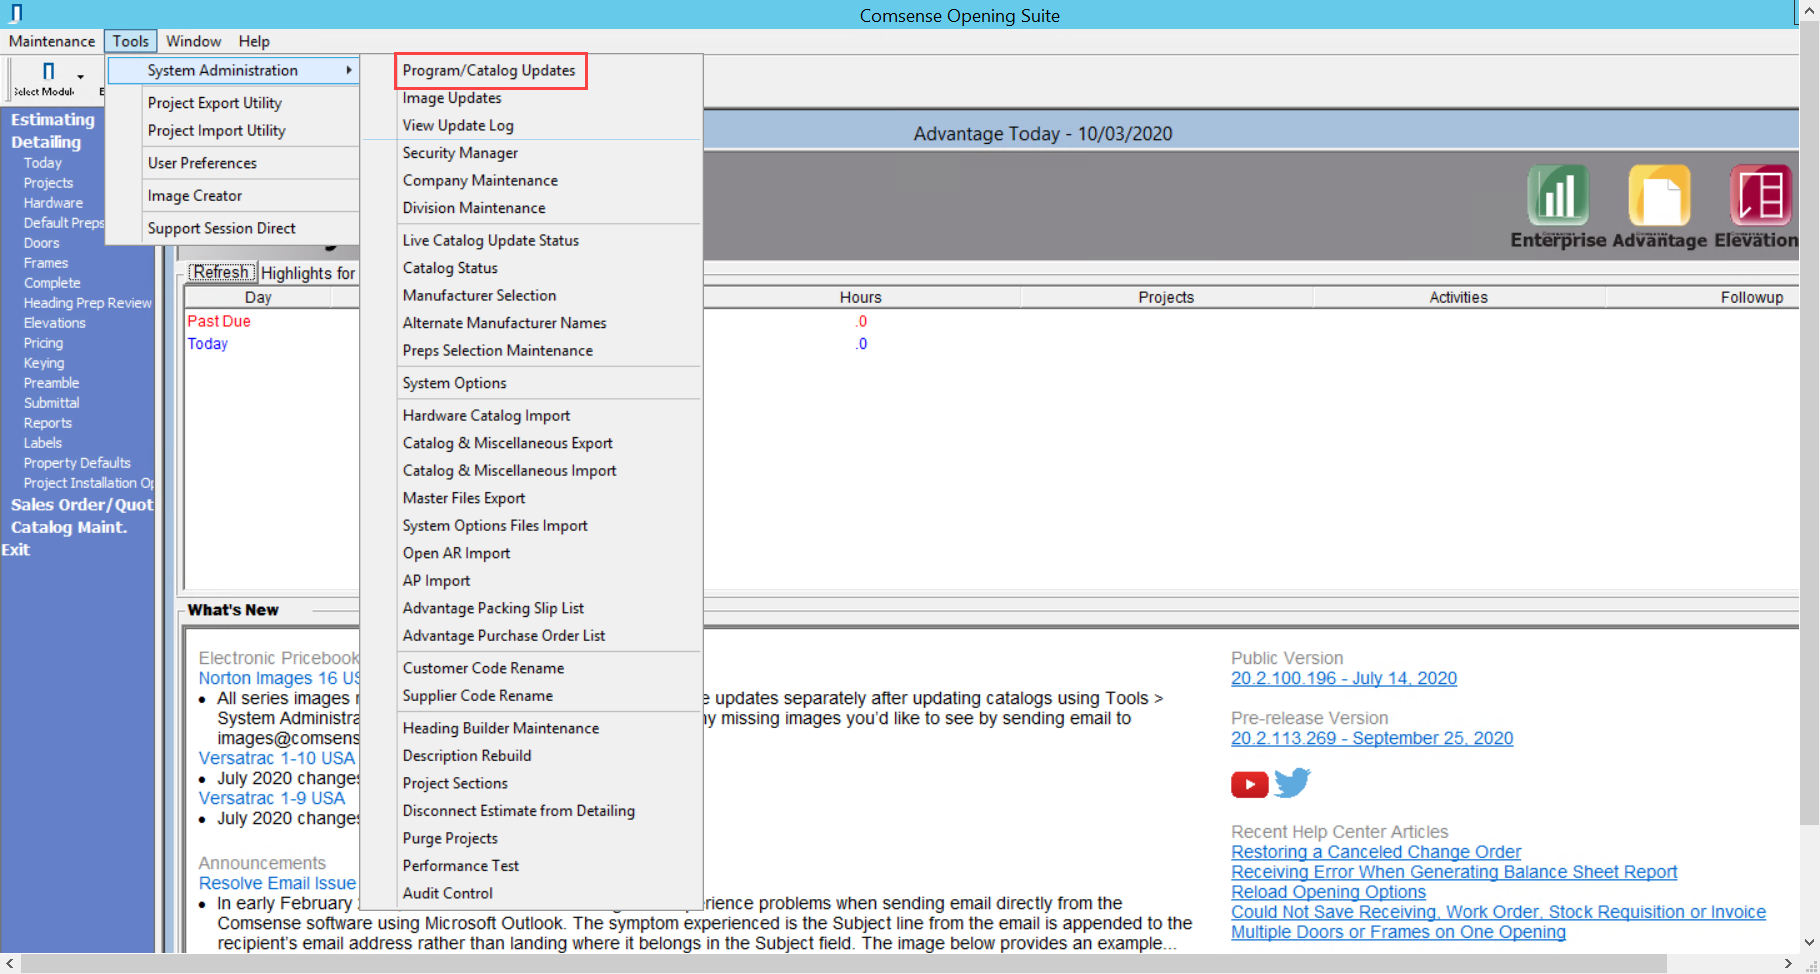 Comsense Advantage; shows the pathway to Program/Catalog Updates.